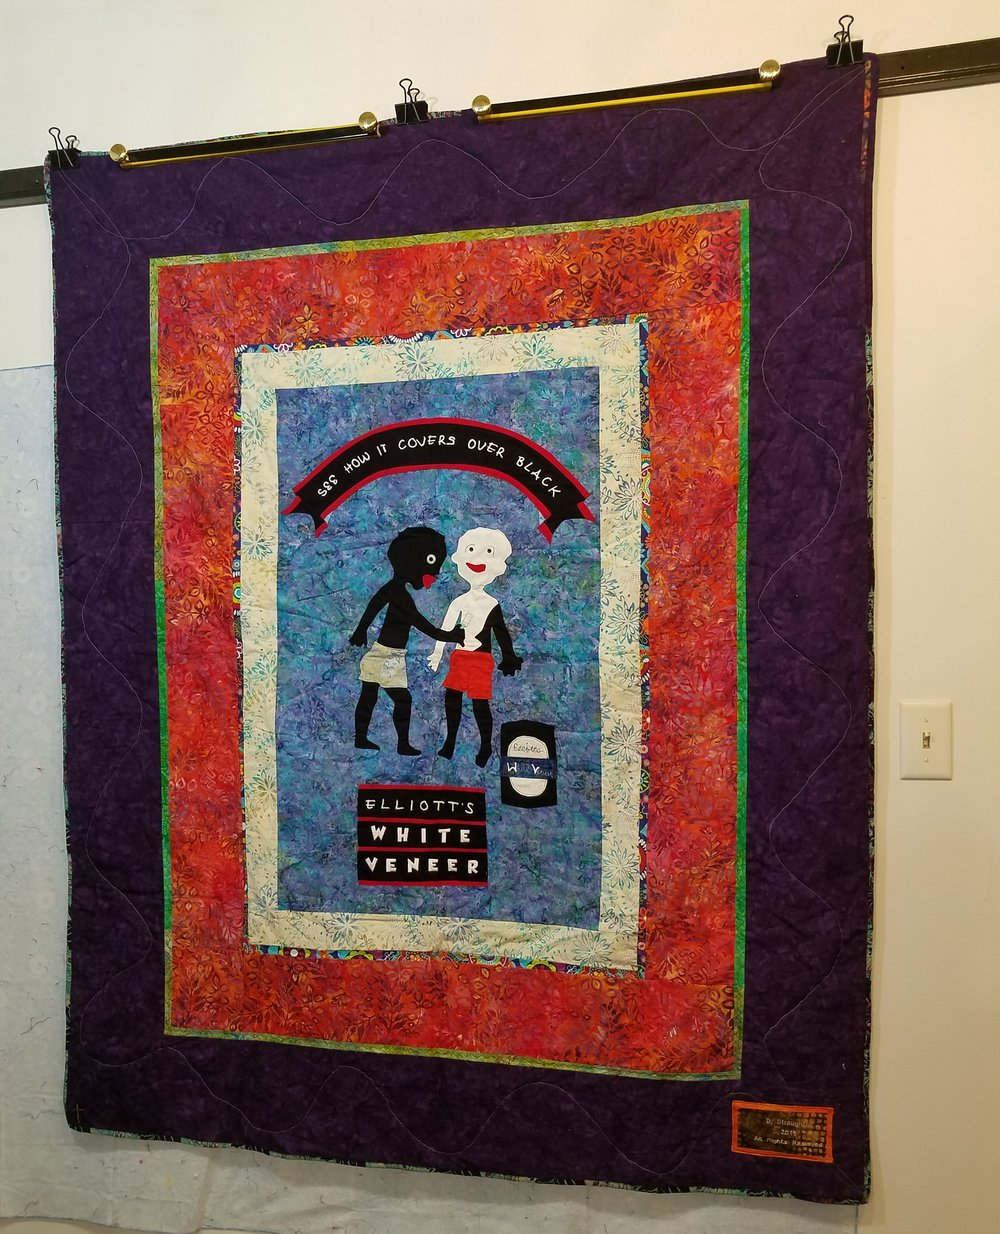 The labels she makes for her quilts are only put on one side of the quilt.